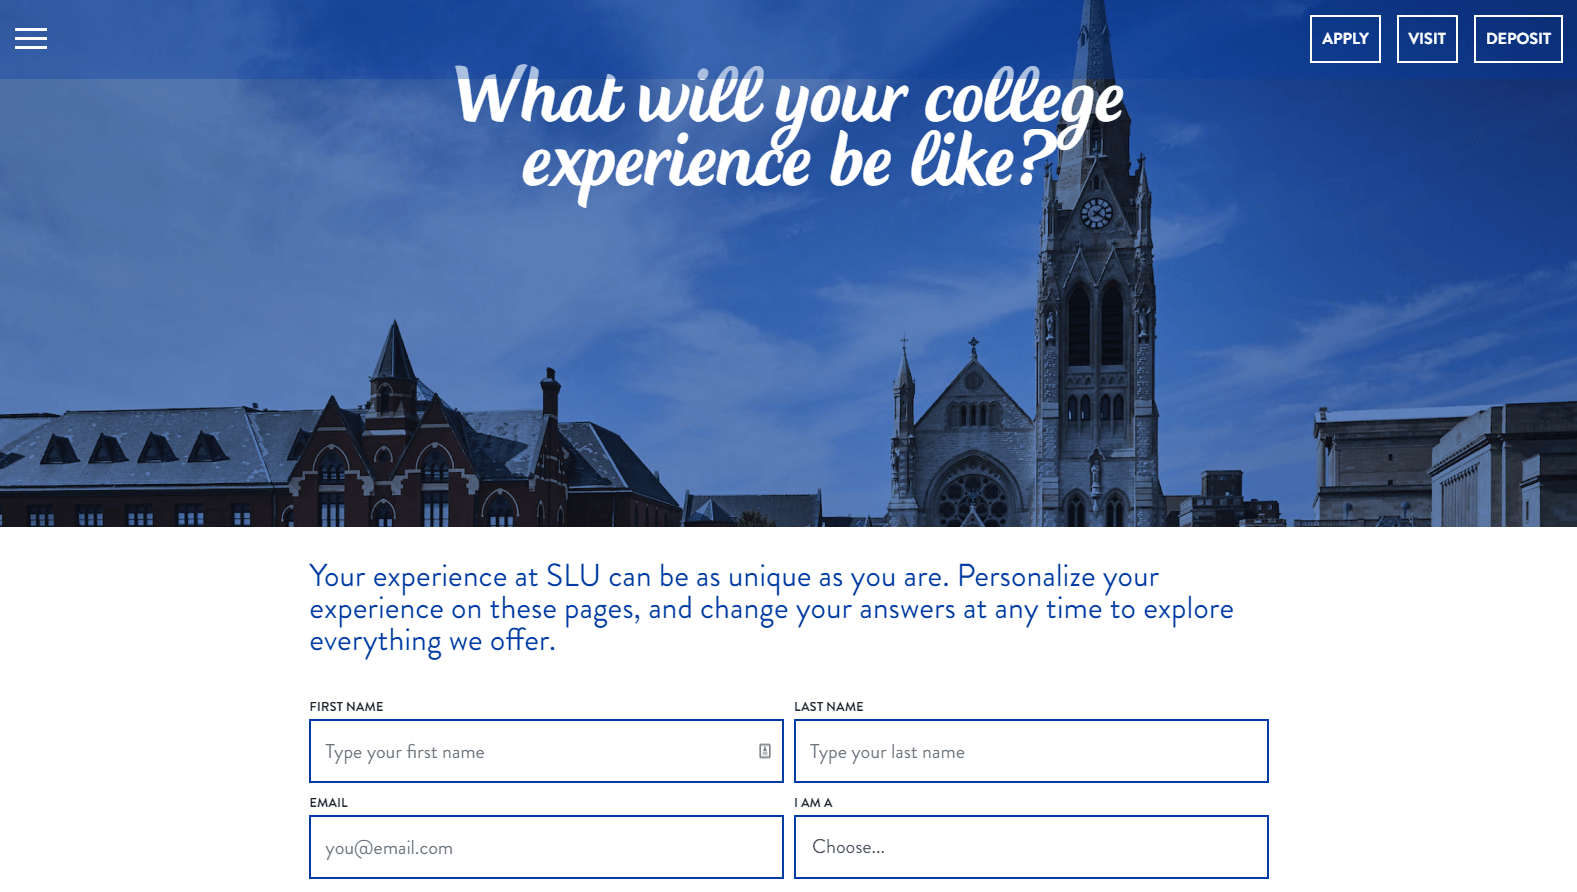 As one of the best college marketing campaigns, St. Louis University's admissions page allows students to customize their educational journey.